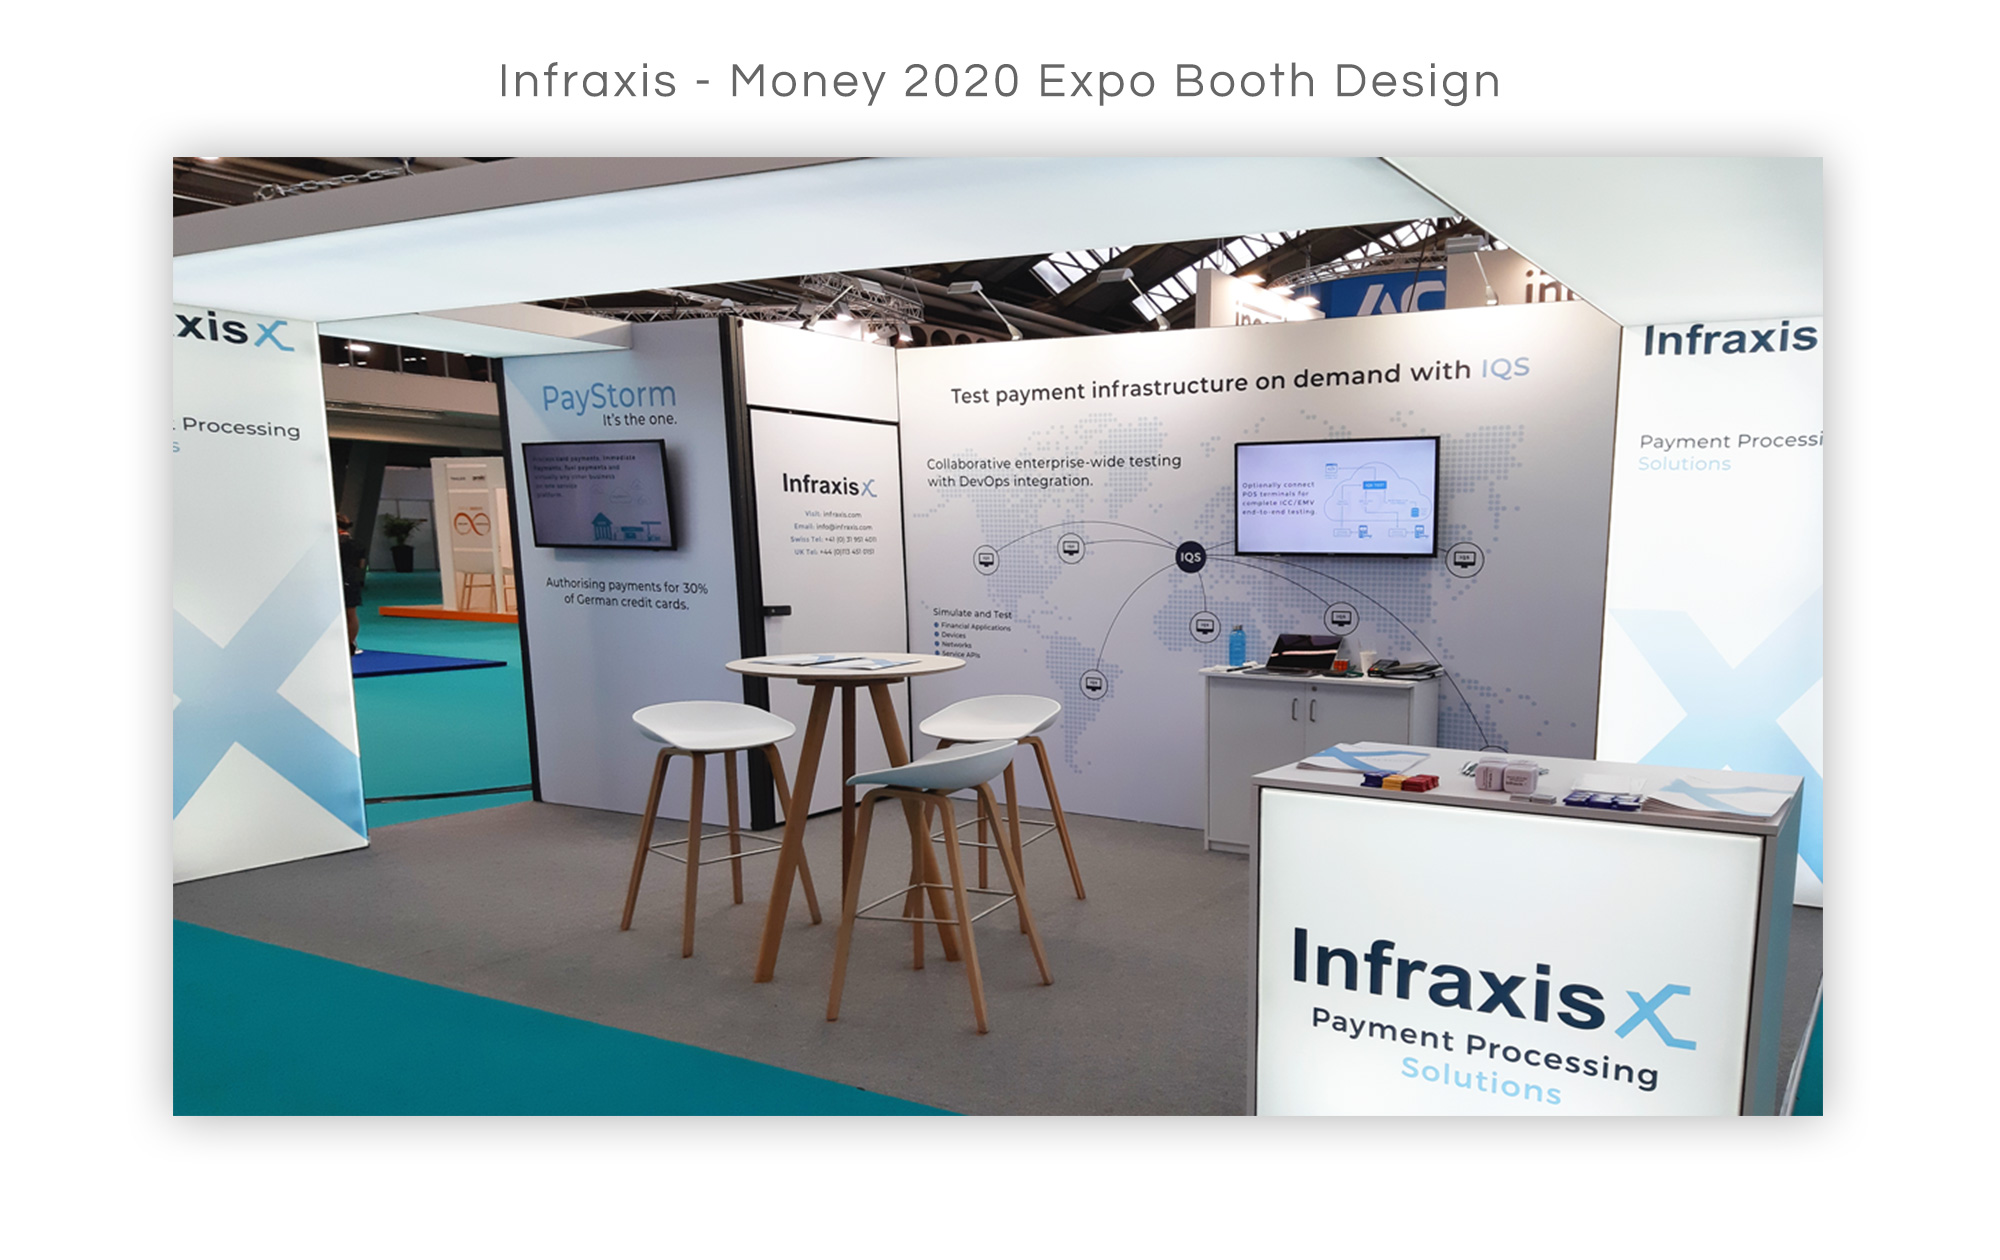 Infraxis Booth Design